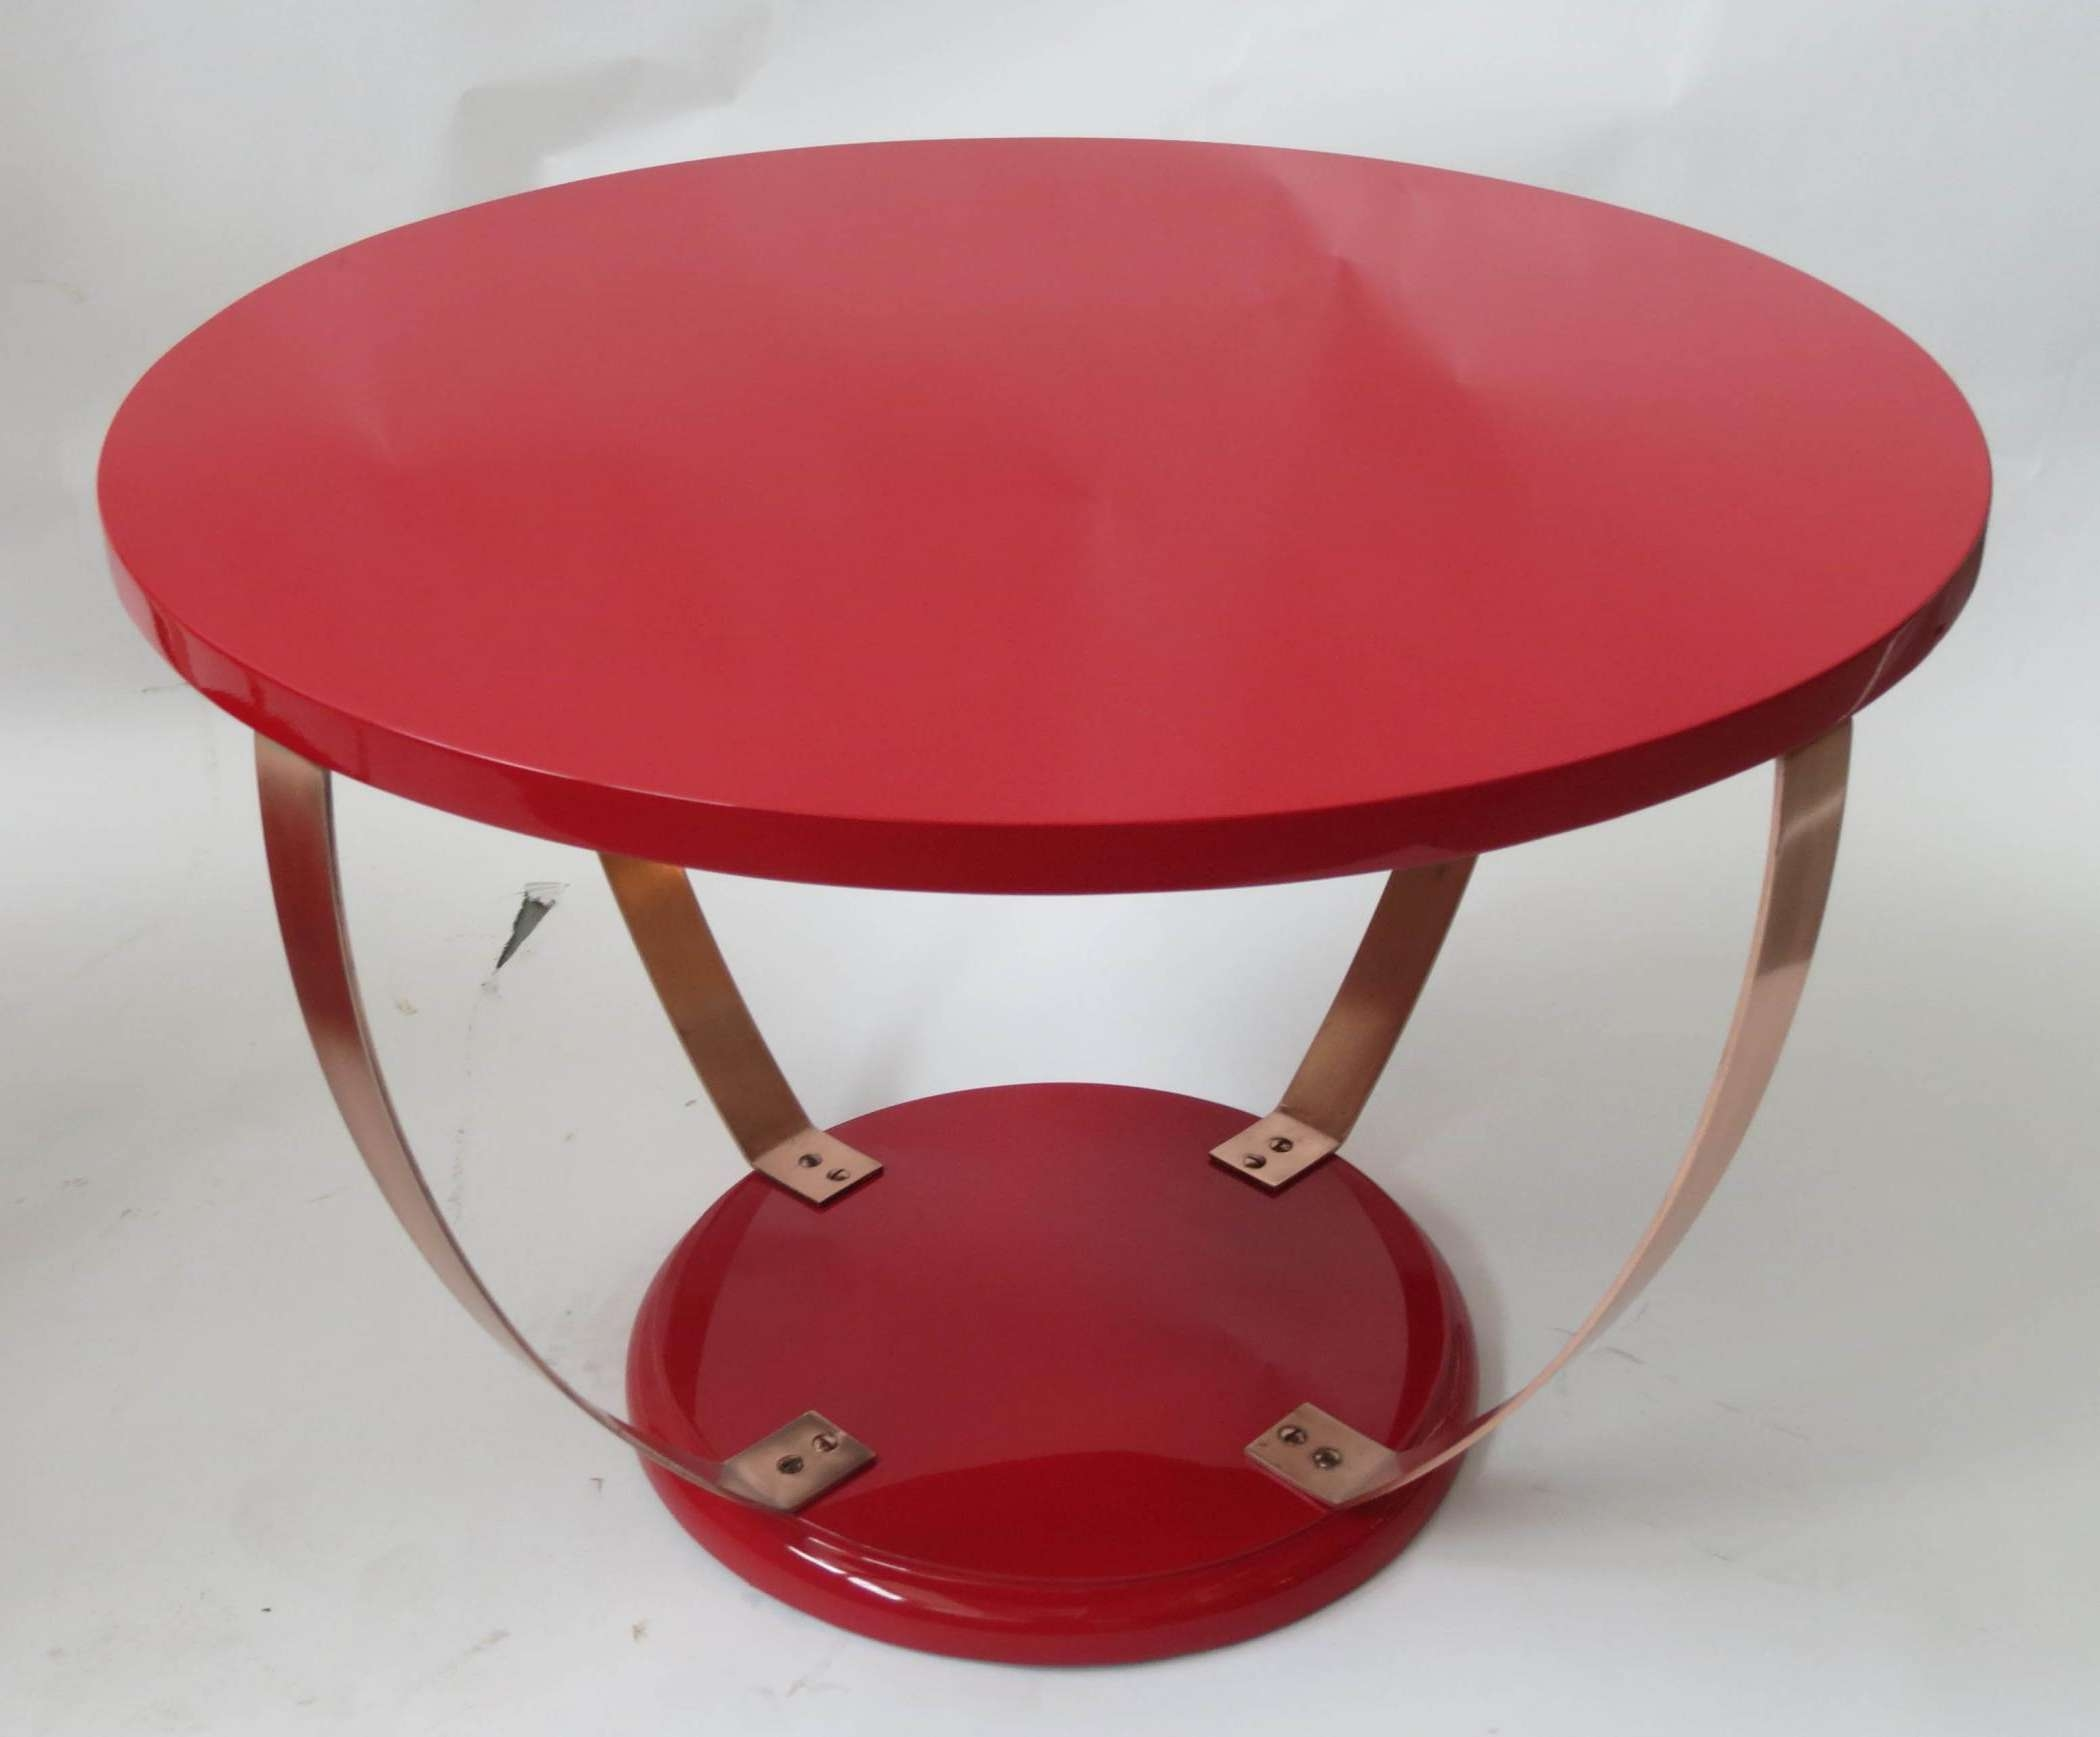 Red Lacquer American Art Deco Coffee Table (View 12 of 20)